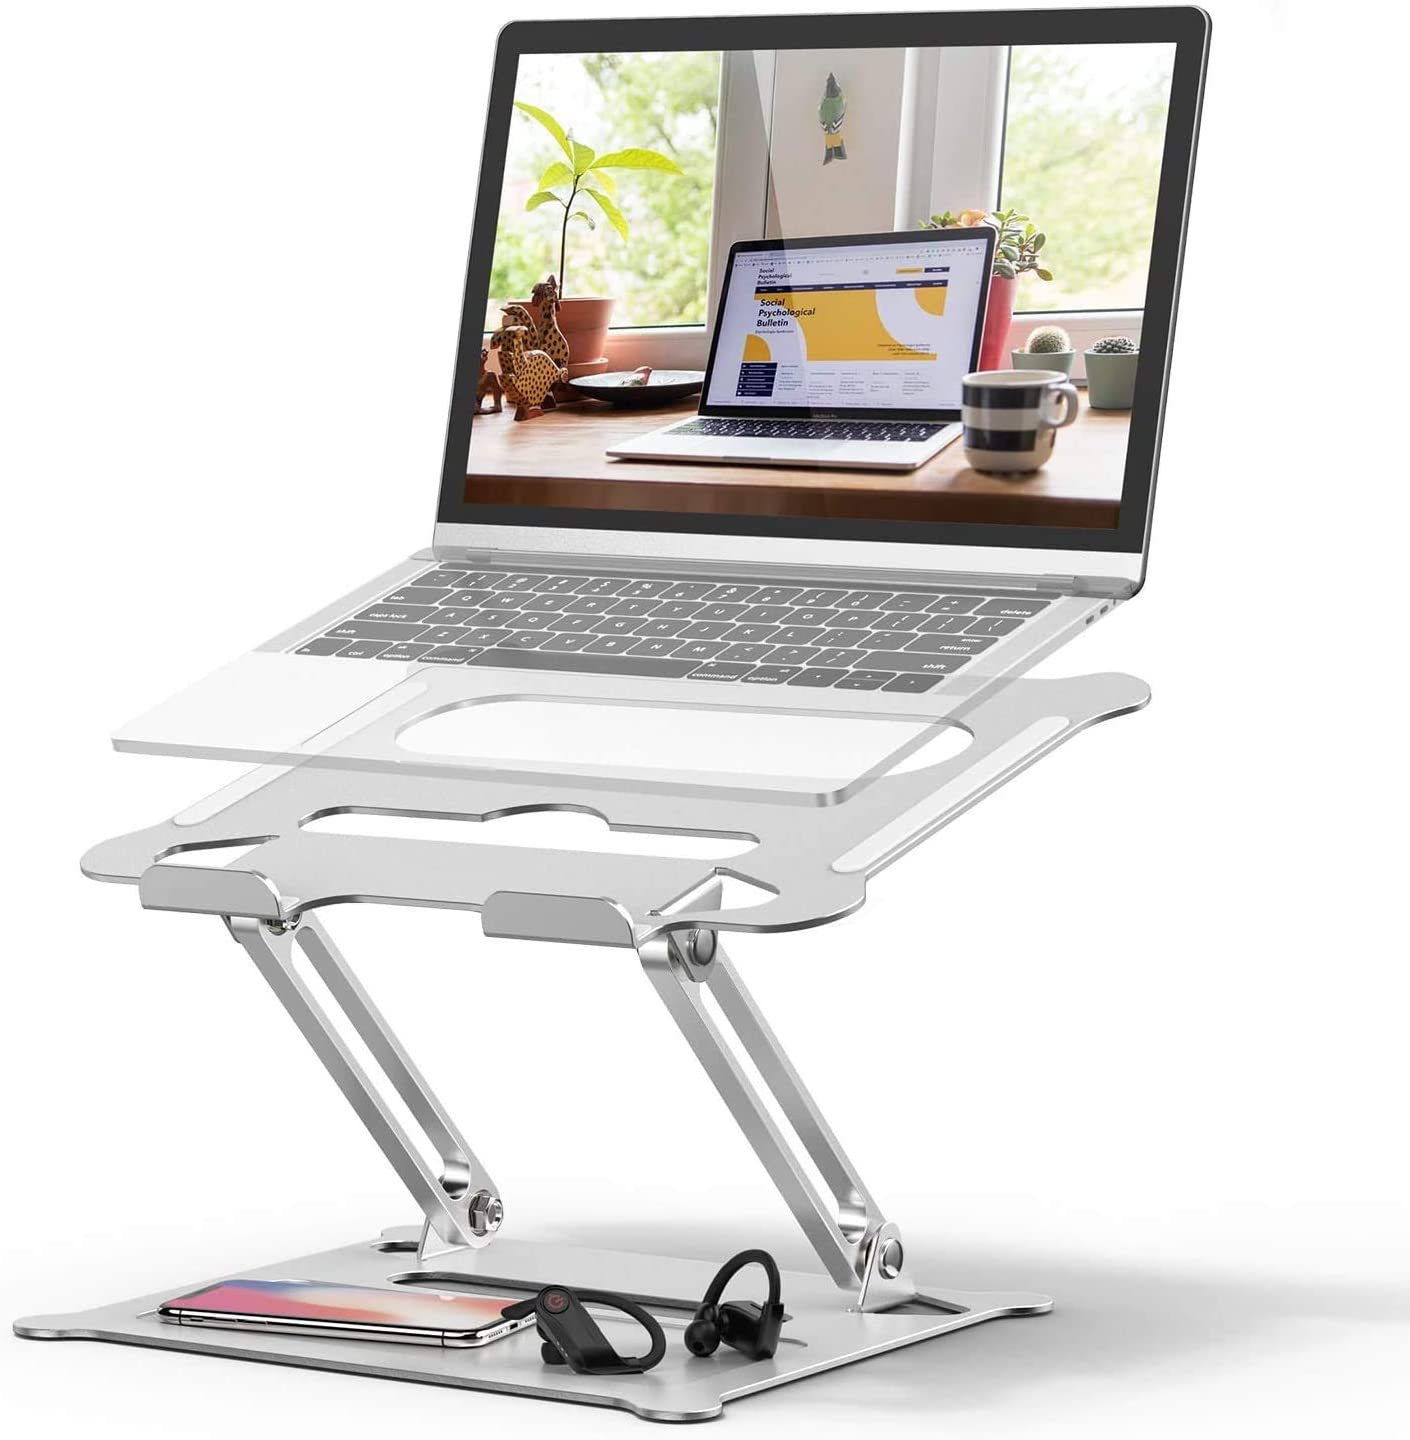 Laptop Stand, Laptop Riser, Adjustable Laptop Stand Portable Foldable Desktop Laptop Stand, Laptop Computer Stand Compatible with 10 to 17 Inch PC Notebook Tablets